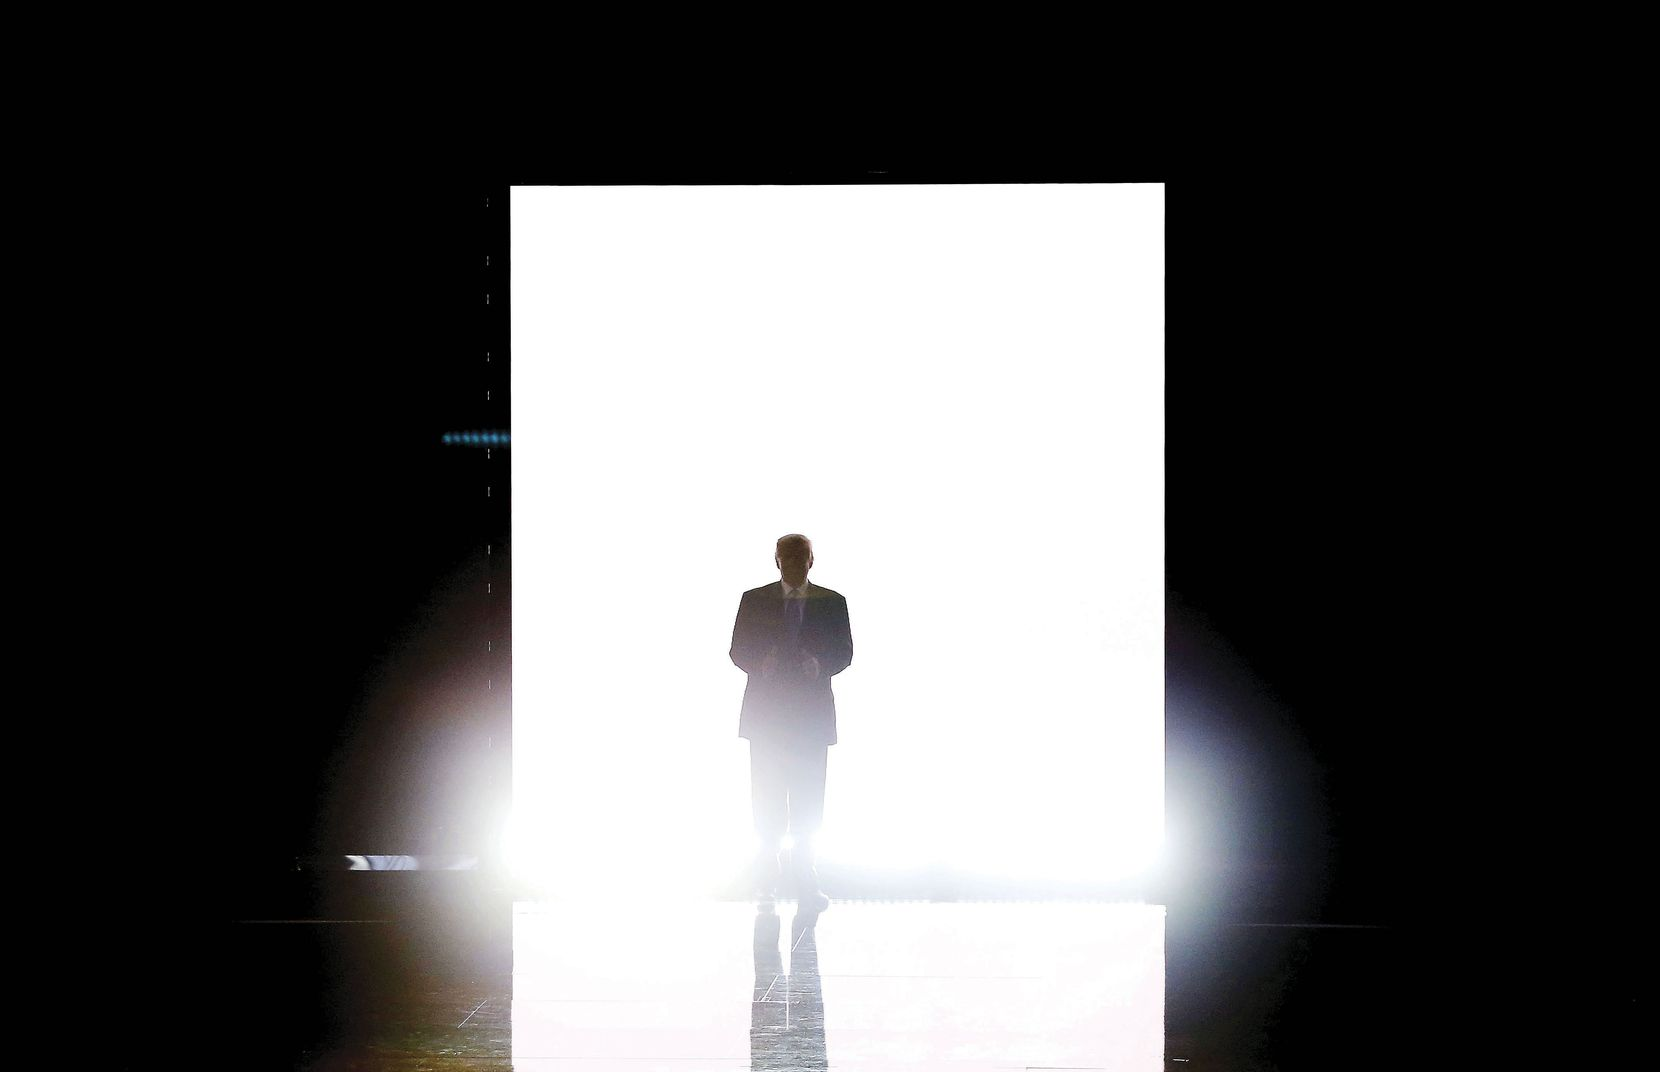 Presumptive GOP nominee Donald Trump gave a thumbs-up signal as he made his way onto the stage before introducing his wife, Melania, to speak during the first day of the Republican National Convention at Quicken Loans Arena in Cleveland, Ohio on July 18.